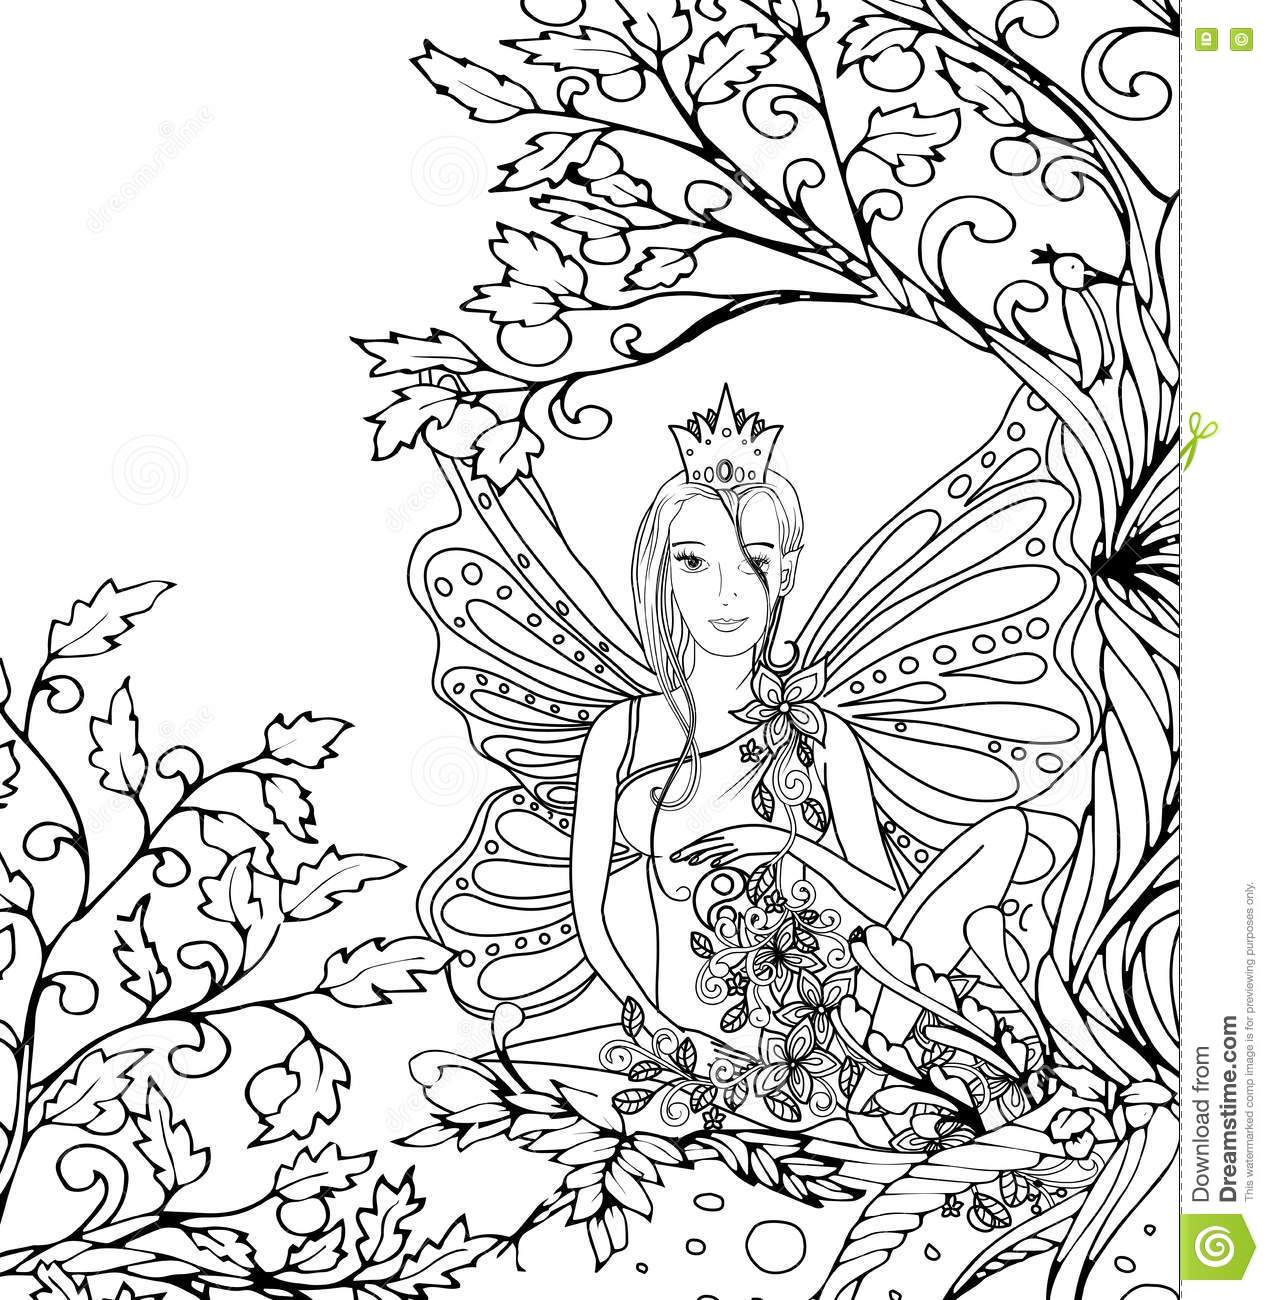 Butterflies And Fairies Coloring Pages